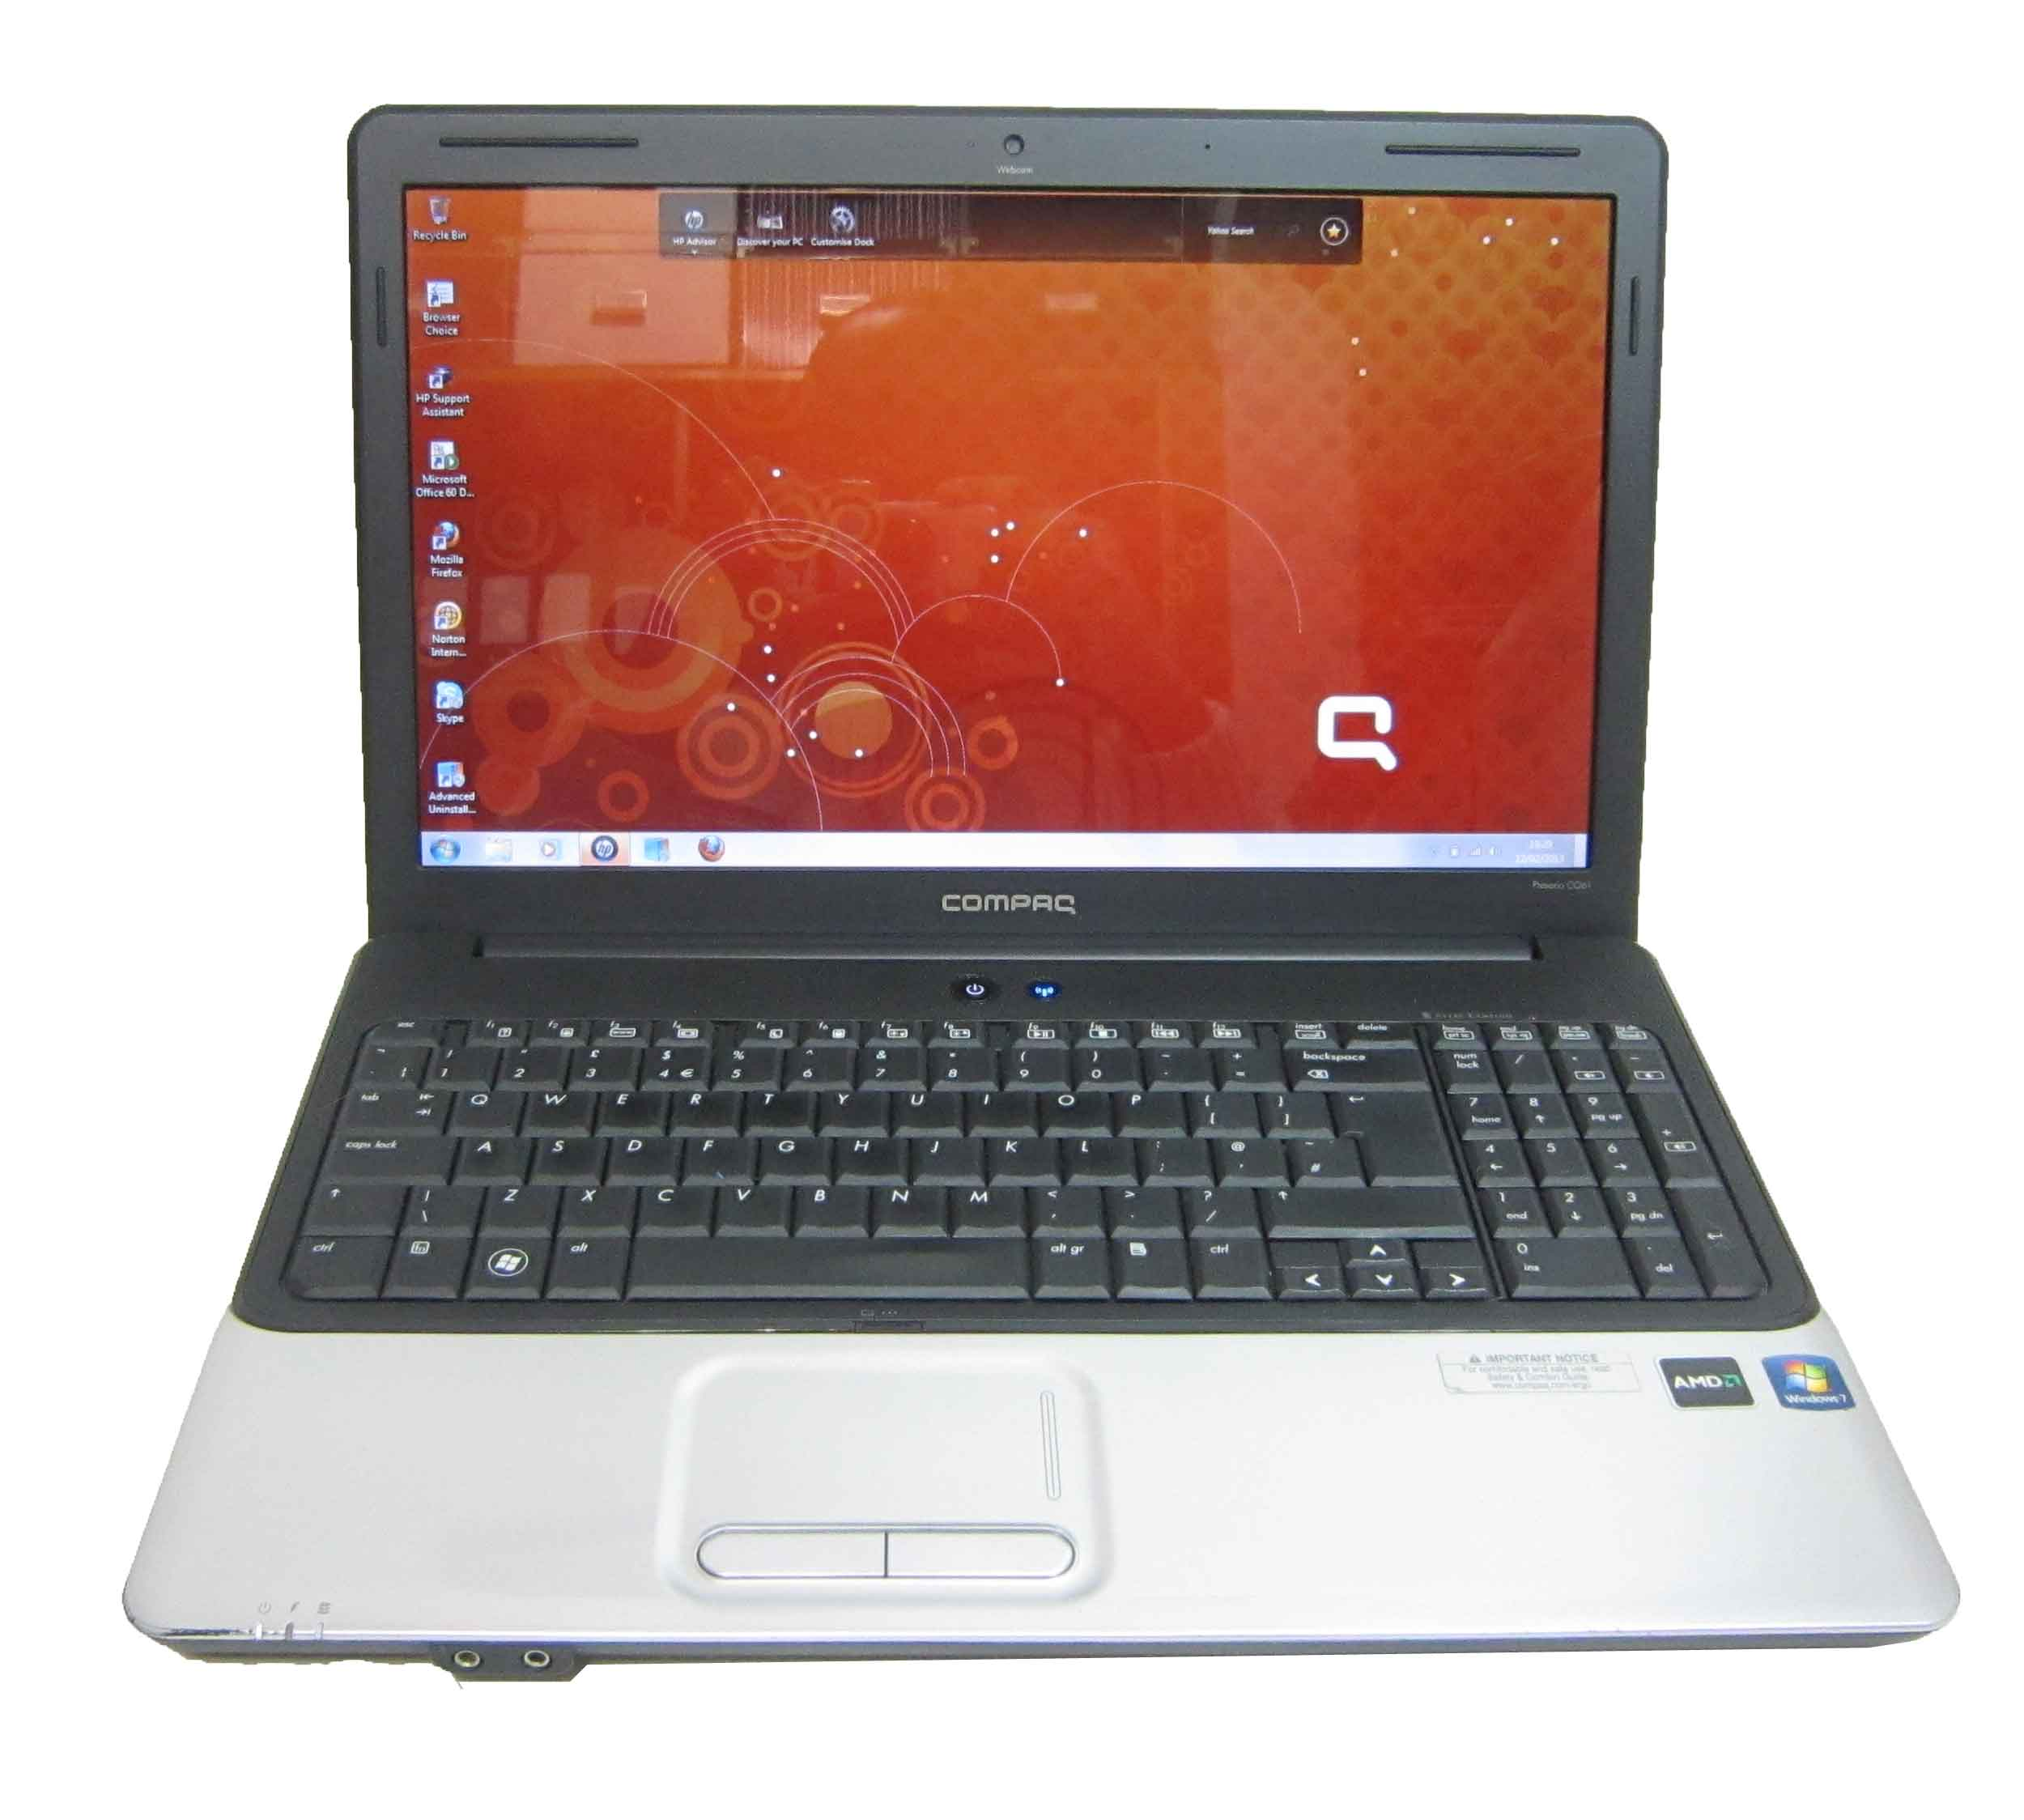 Compaq Presario CQ61 15.6quot; Laptop  HDMI 2GB 250GB Webcam